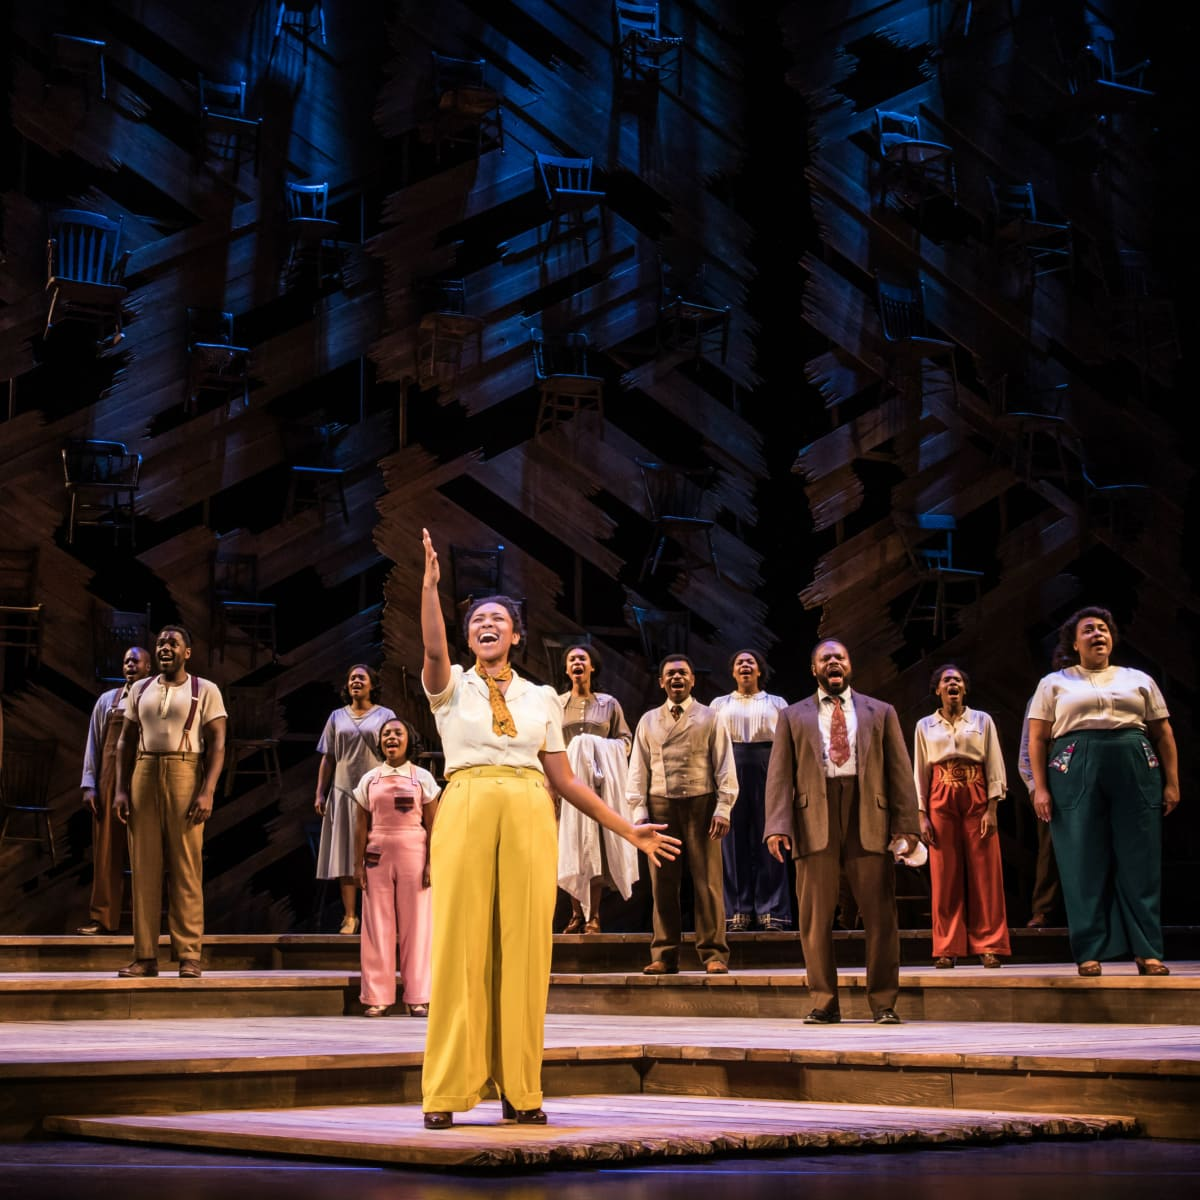 Adrianna Hicks (Celie) and the North American tour cast of The Color Purple